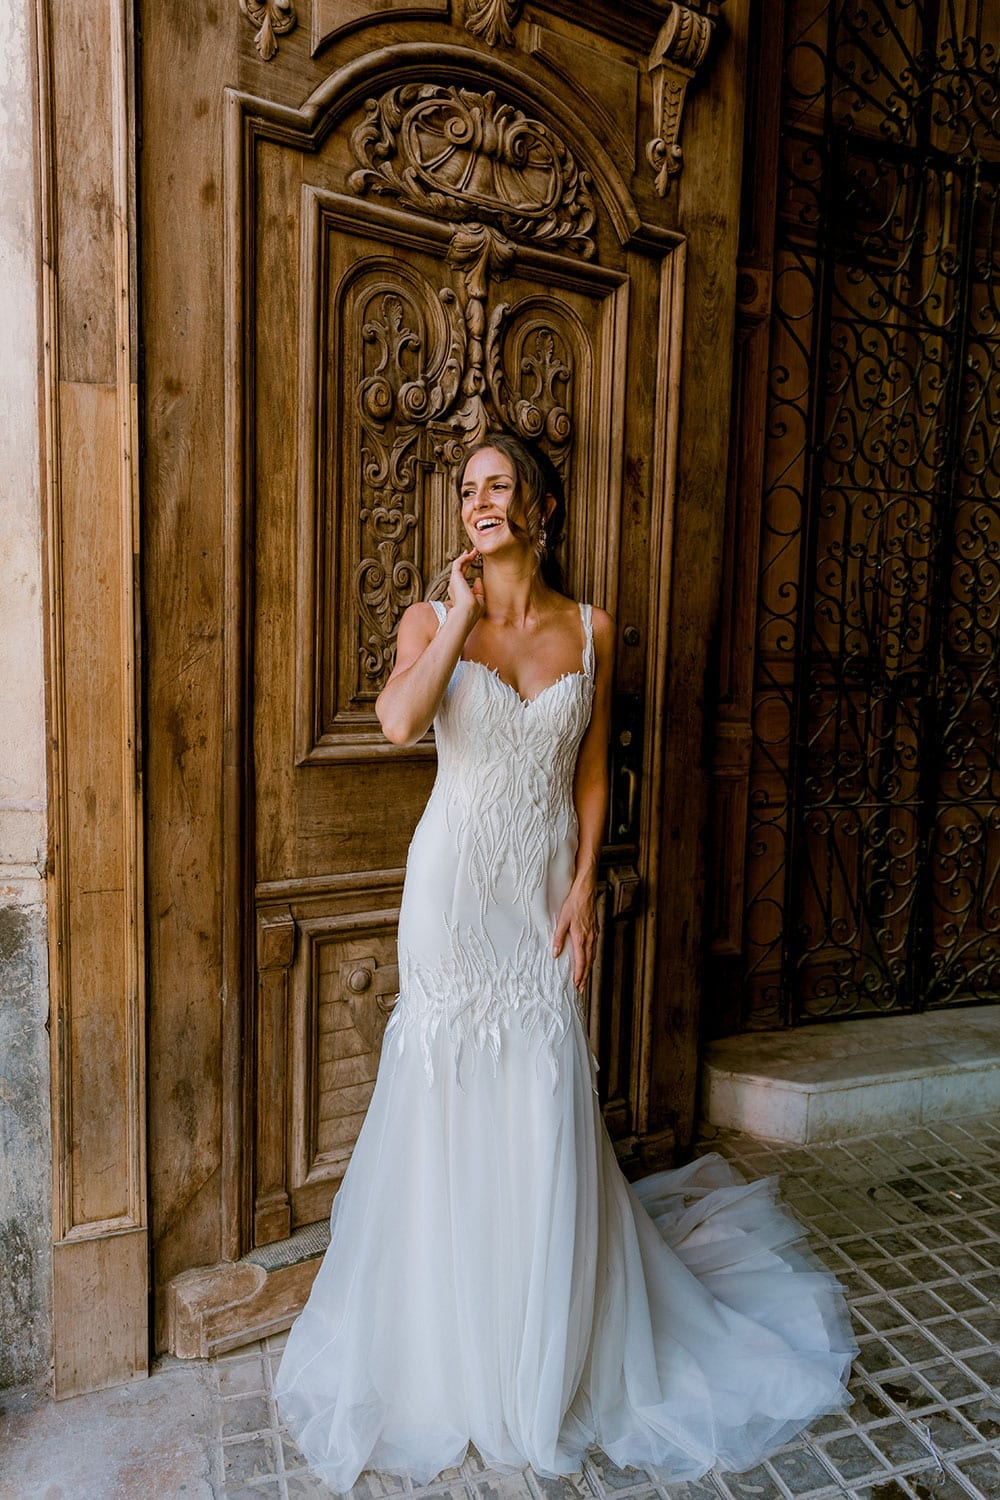 Model wearing Vinka Design Irina Wedding Dress, a n Embroidered Mermaid Lace Wedding Gown in front of a large old wooden door in Havana